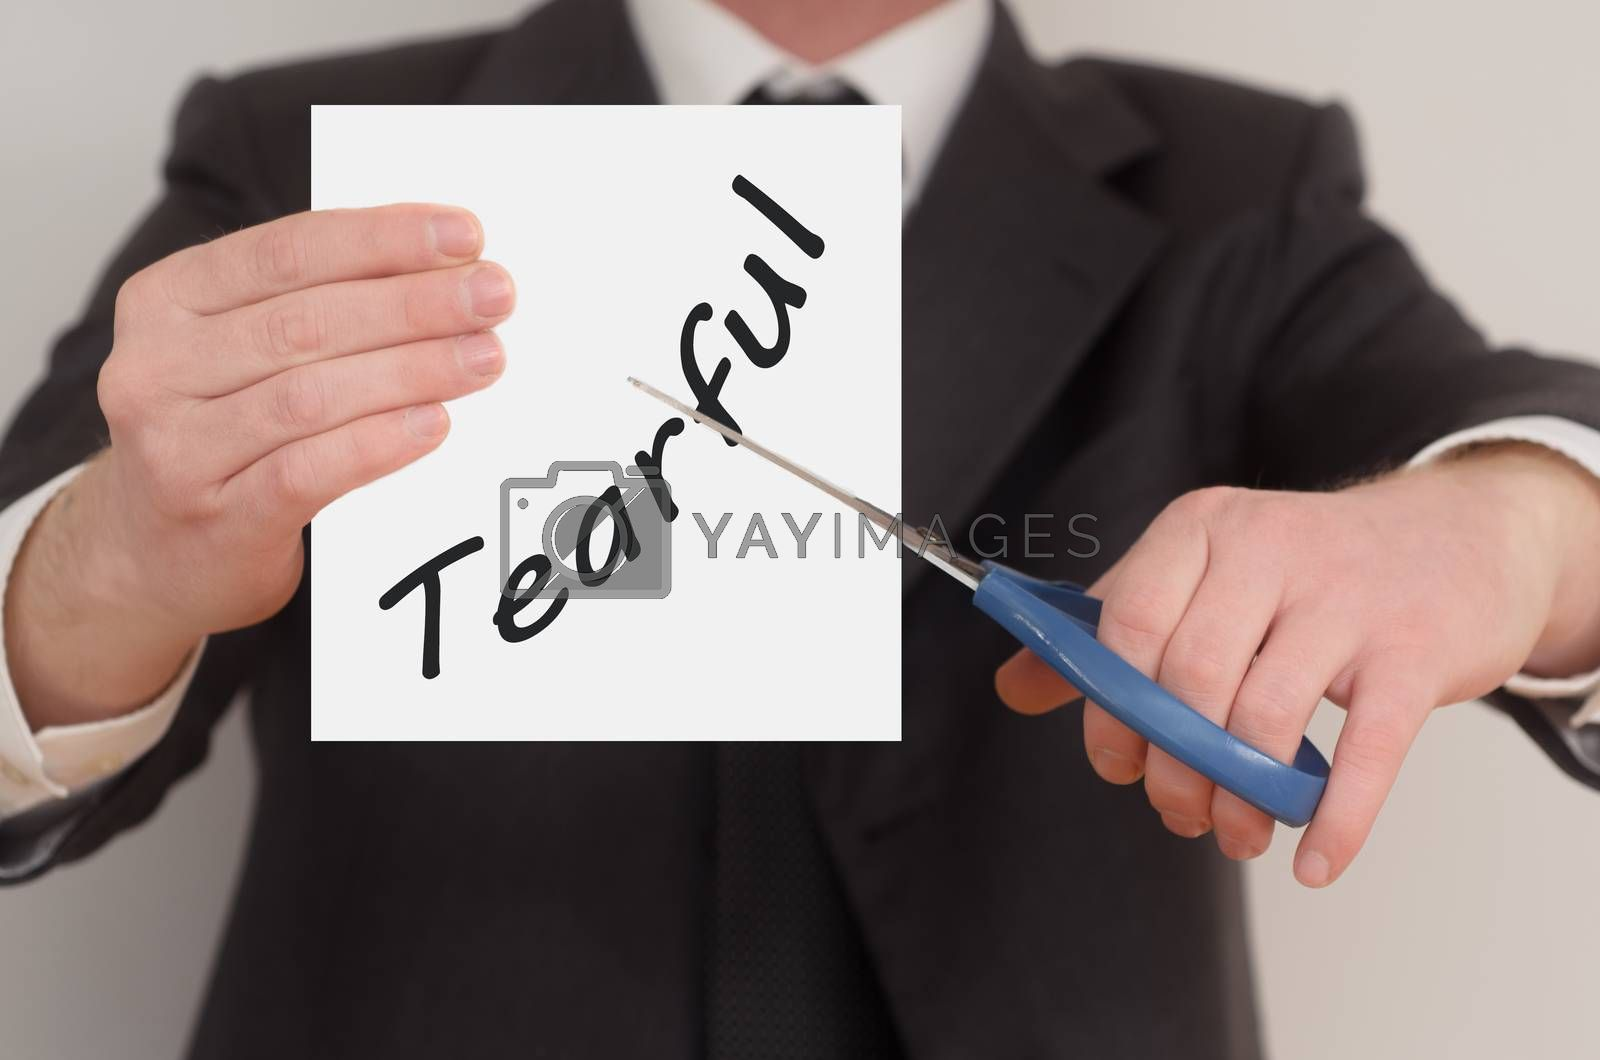 Tearful, man in suit cutting text on paper with scissors